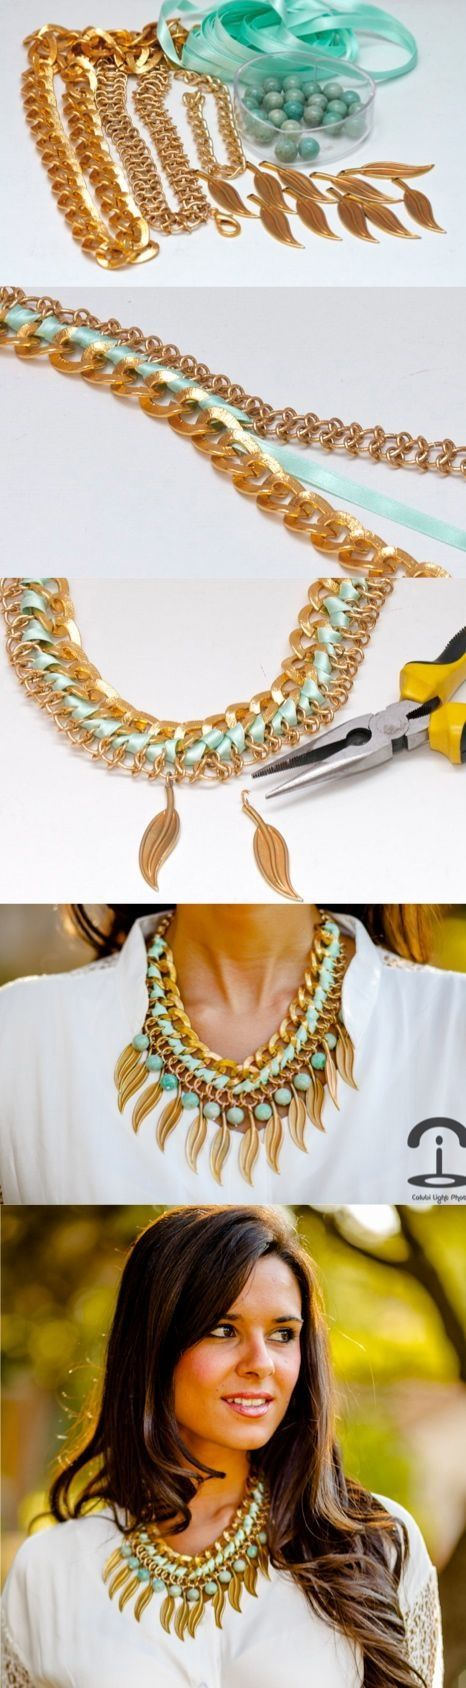 DIY necklace - minus the feathers